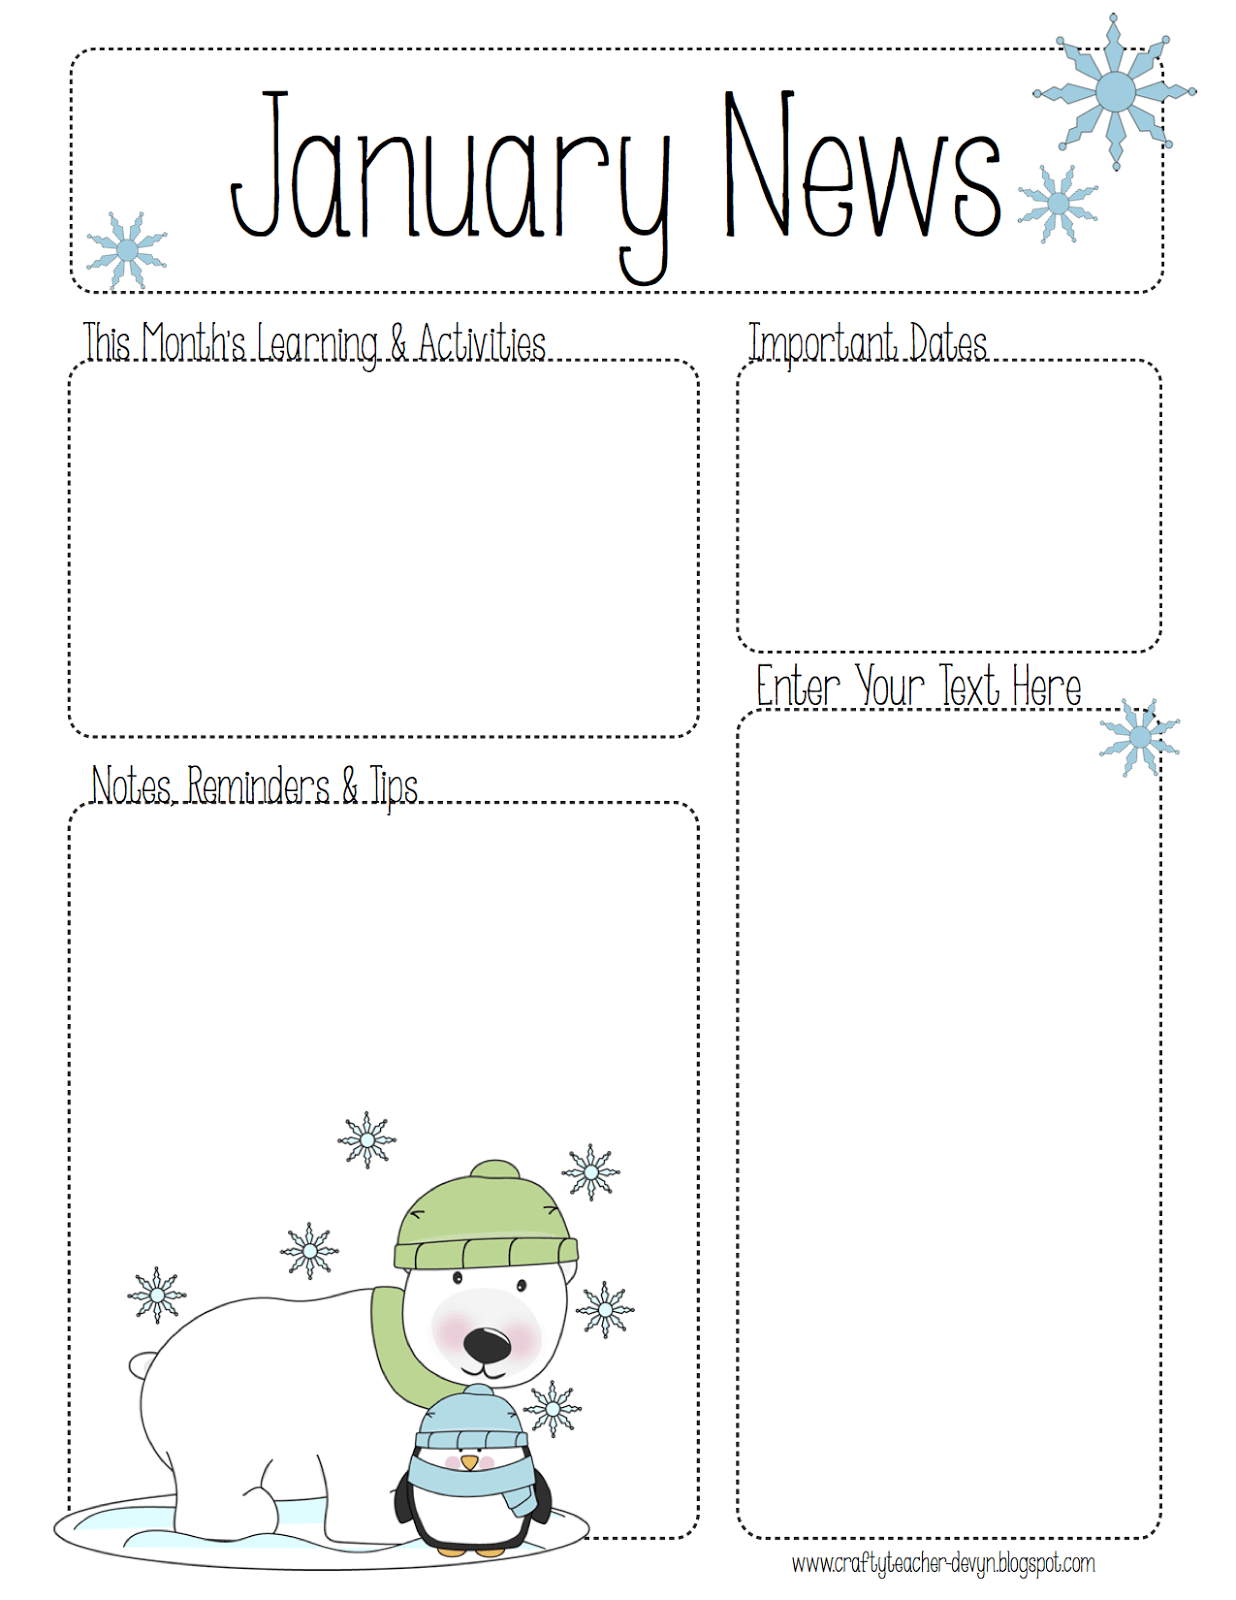 The Crafty Teacher: January Newsletter for ALL Grades